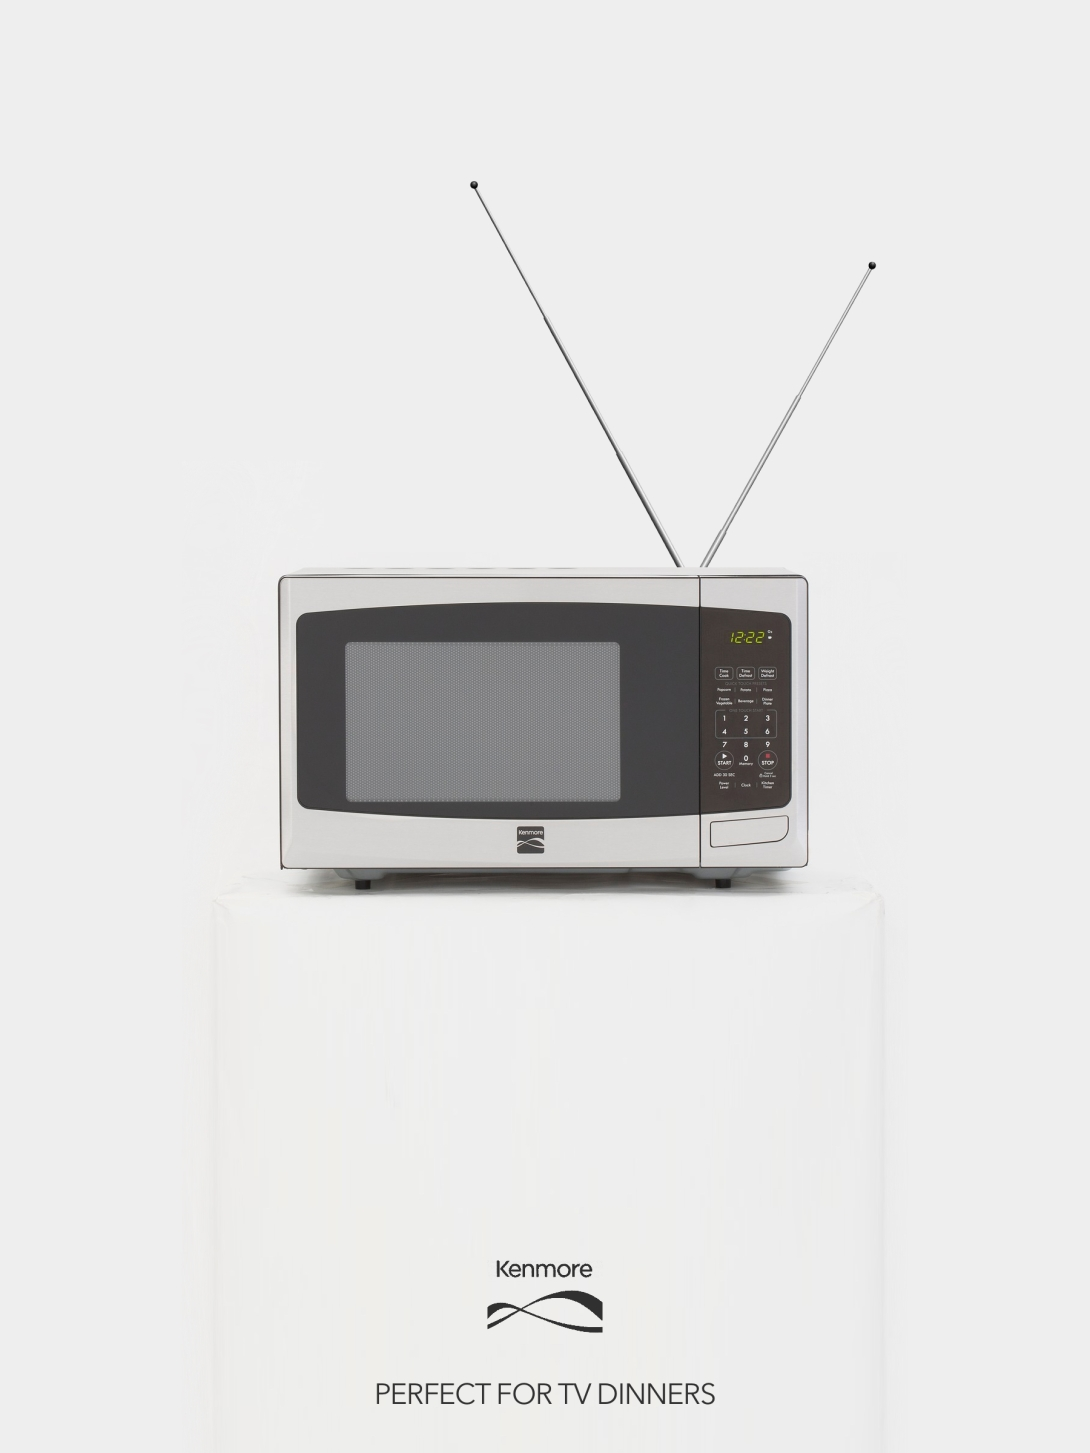 an advertising idea for a microwaves brand - tv dinners